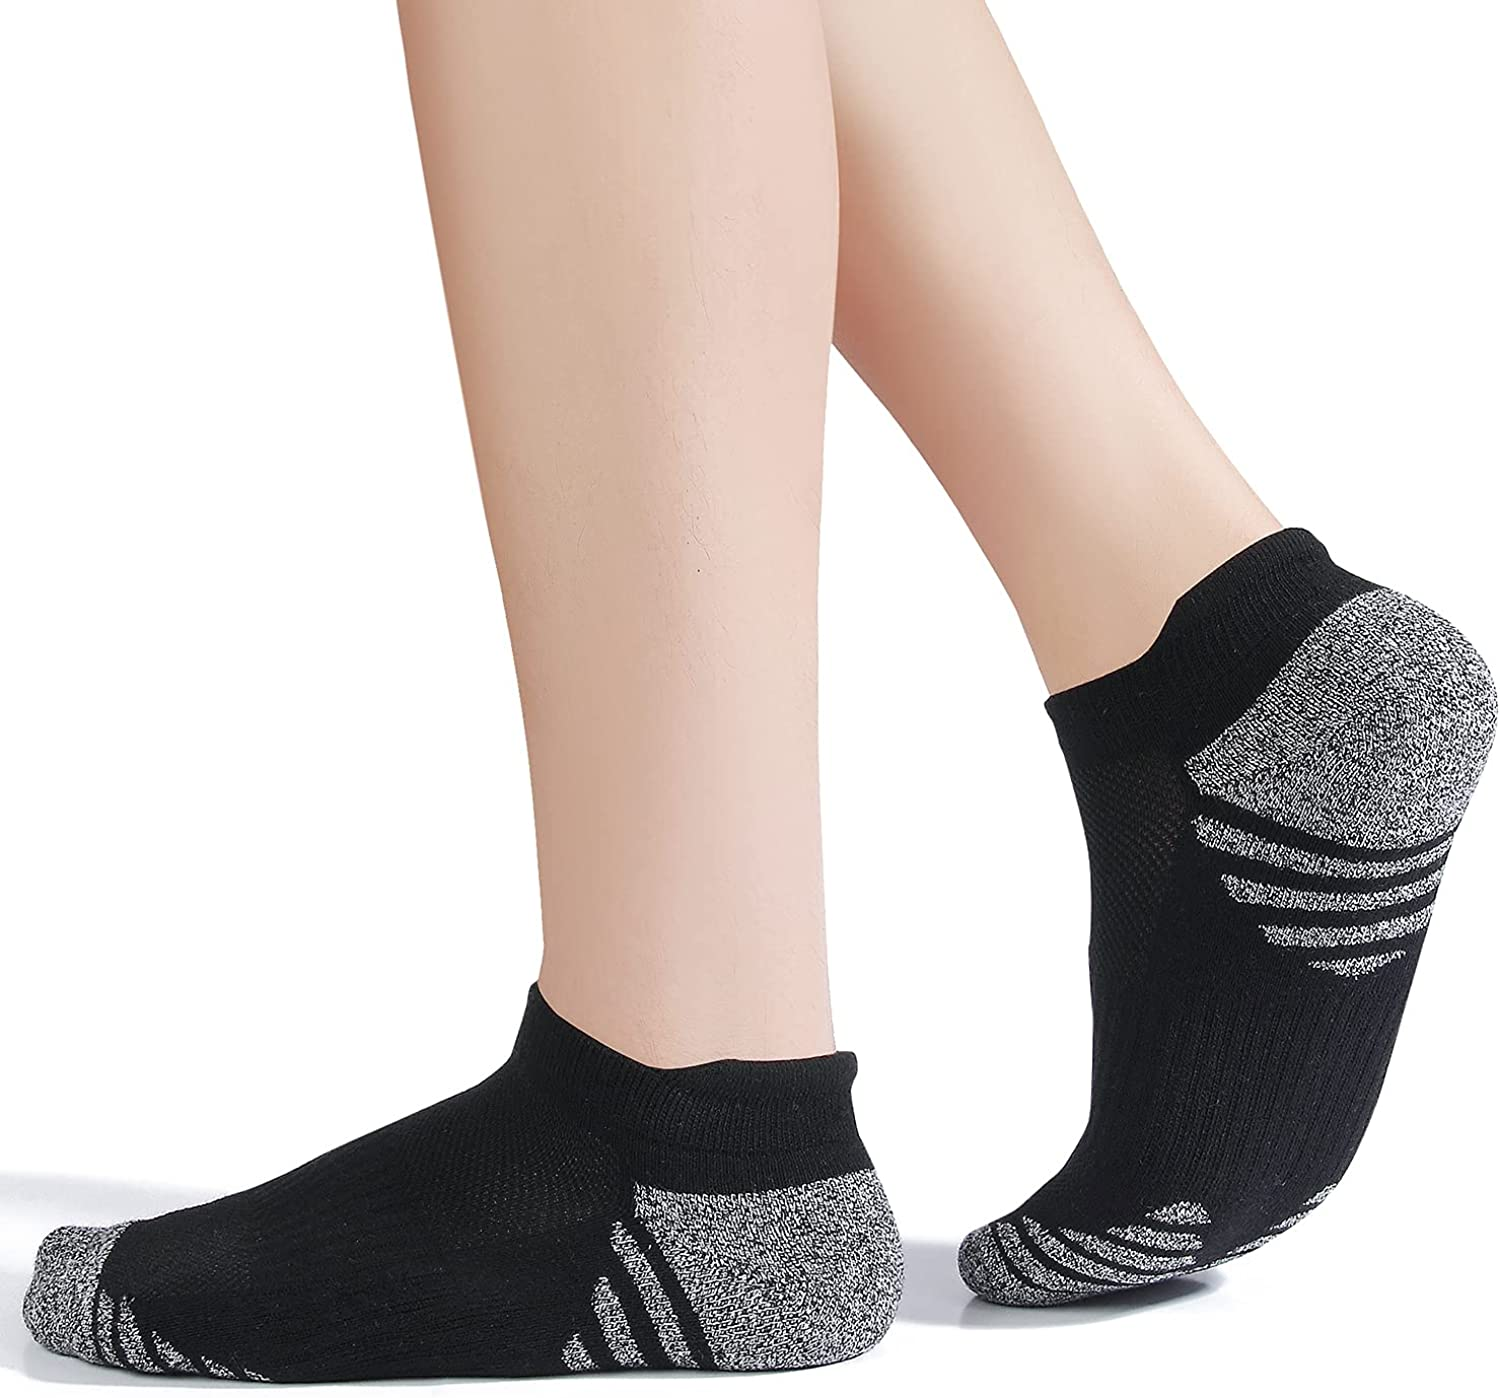 Cotton No Show Socks for Men With Heel Tab, Cushion Ankle Compression Running Athletic Low Cut Mens Sock 6 Pack